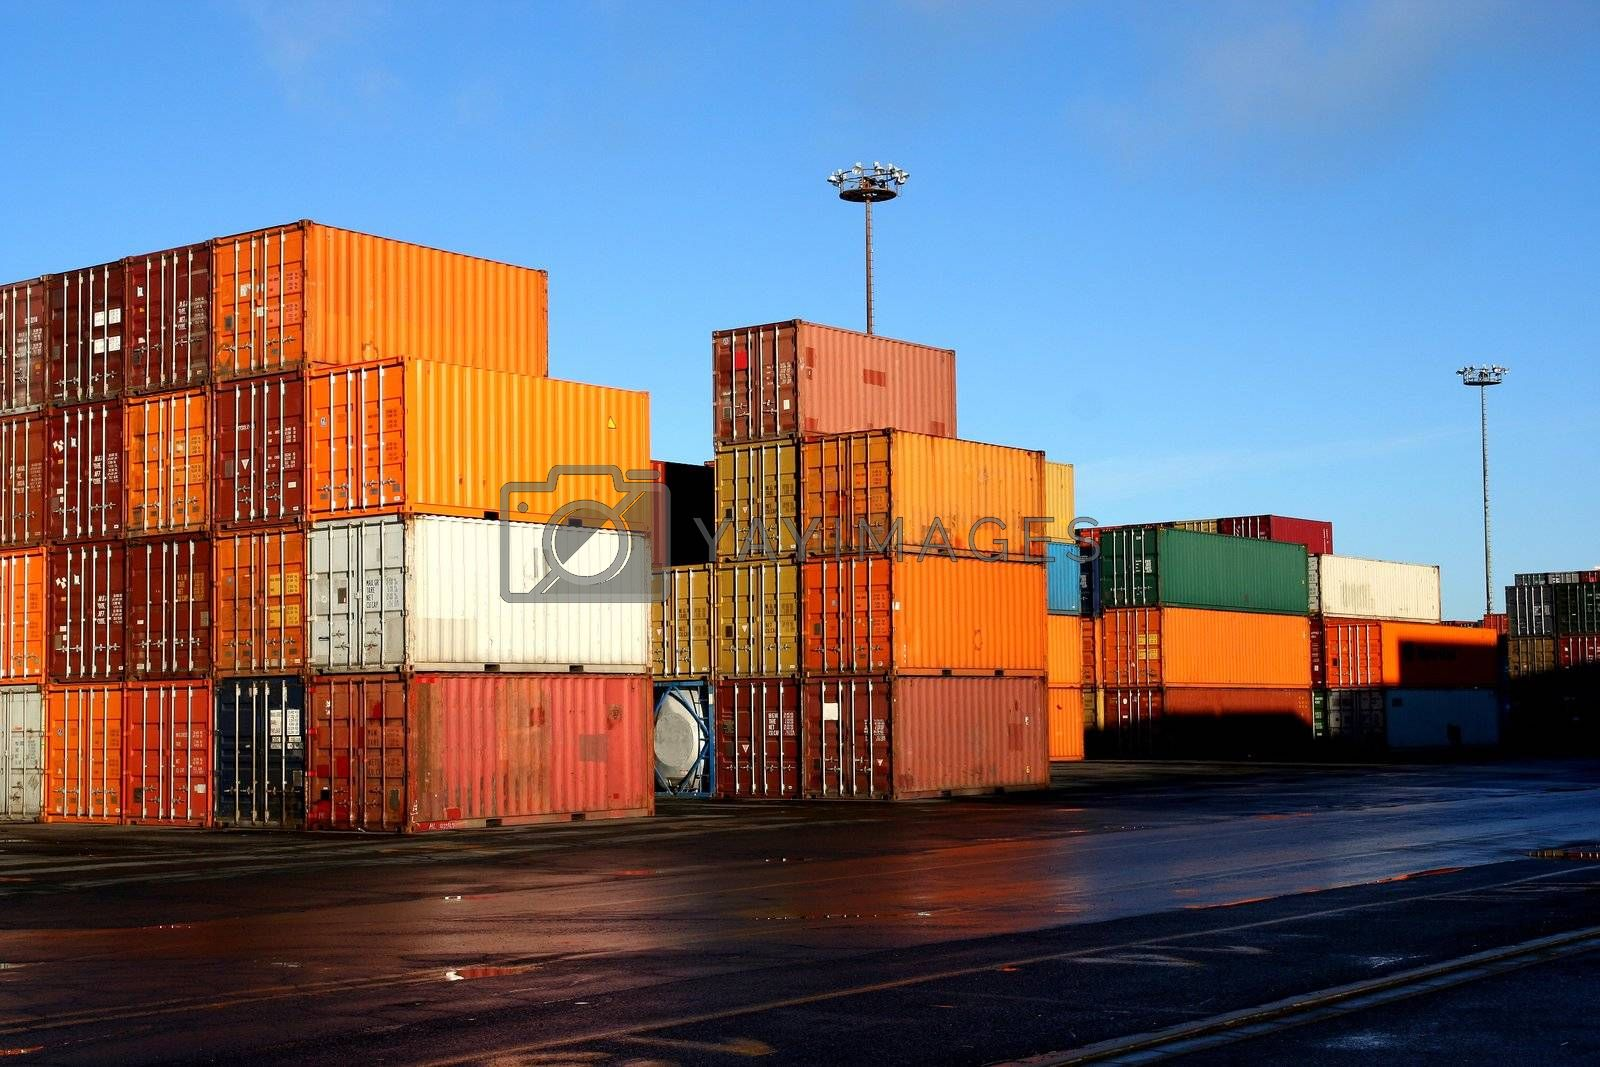 Containers in an intermodal yard by le_cyclope